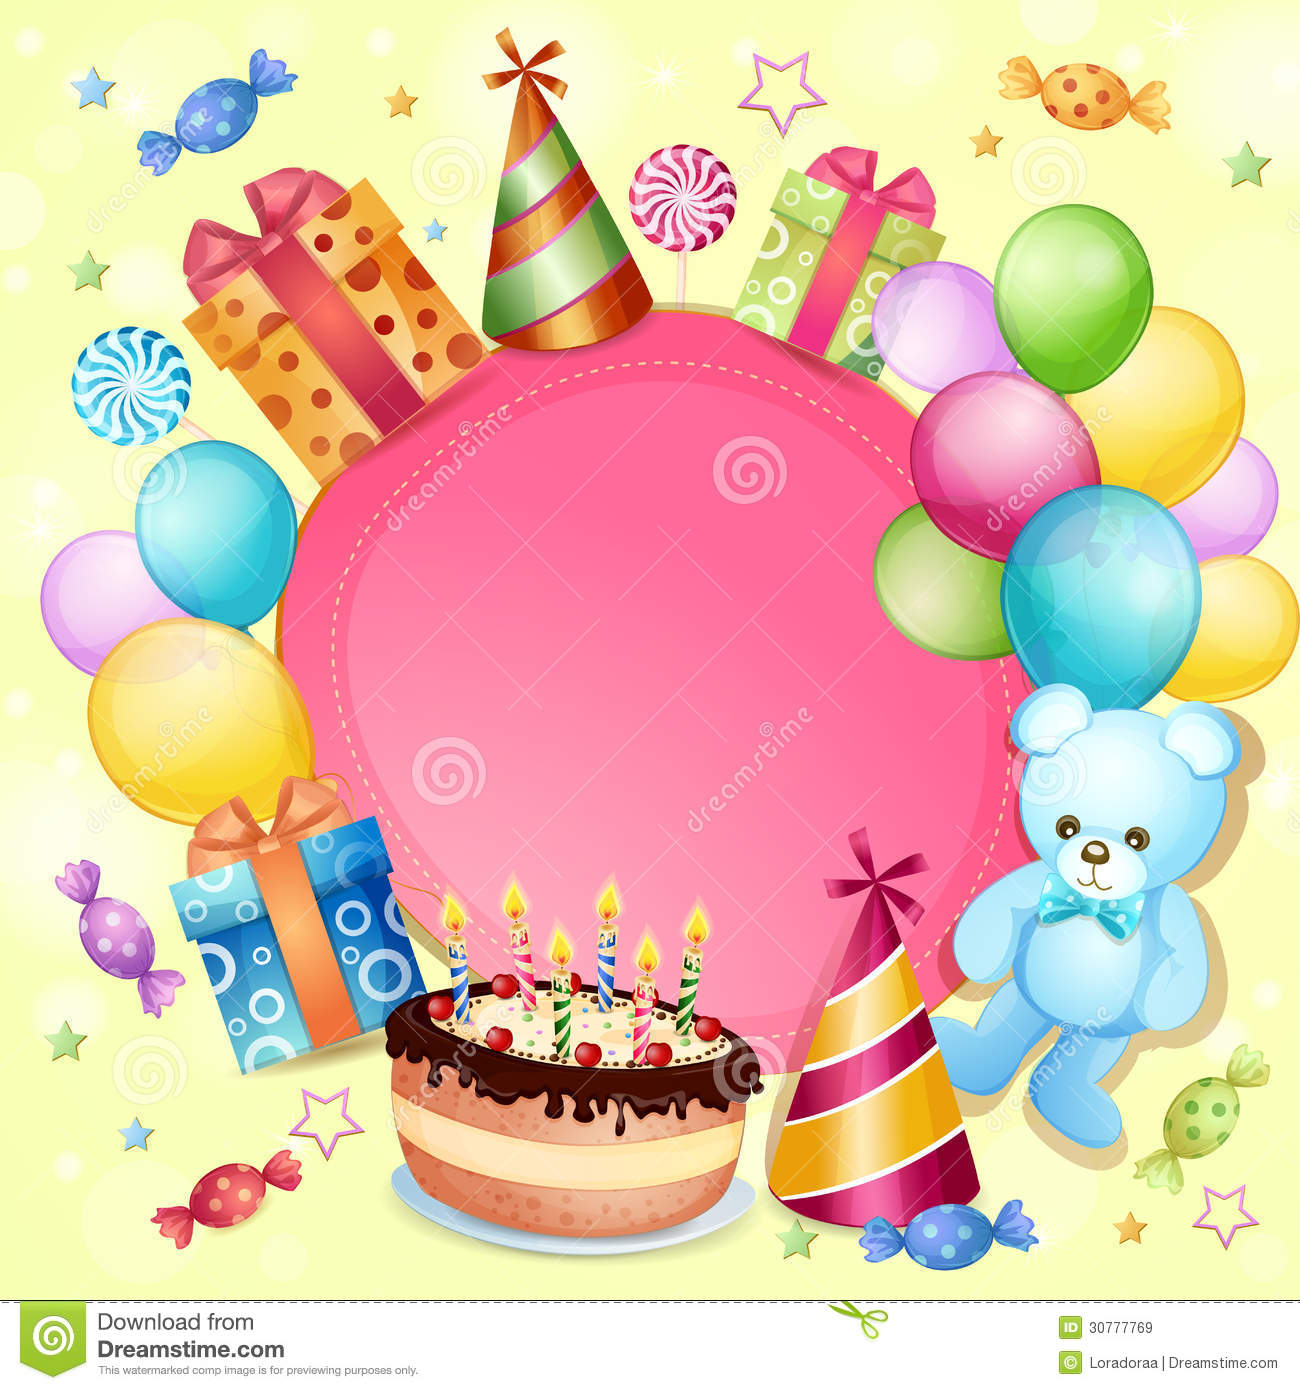 Birthday Card Royalty Free Stock Images - Image: 30777769